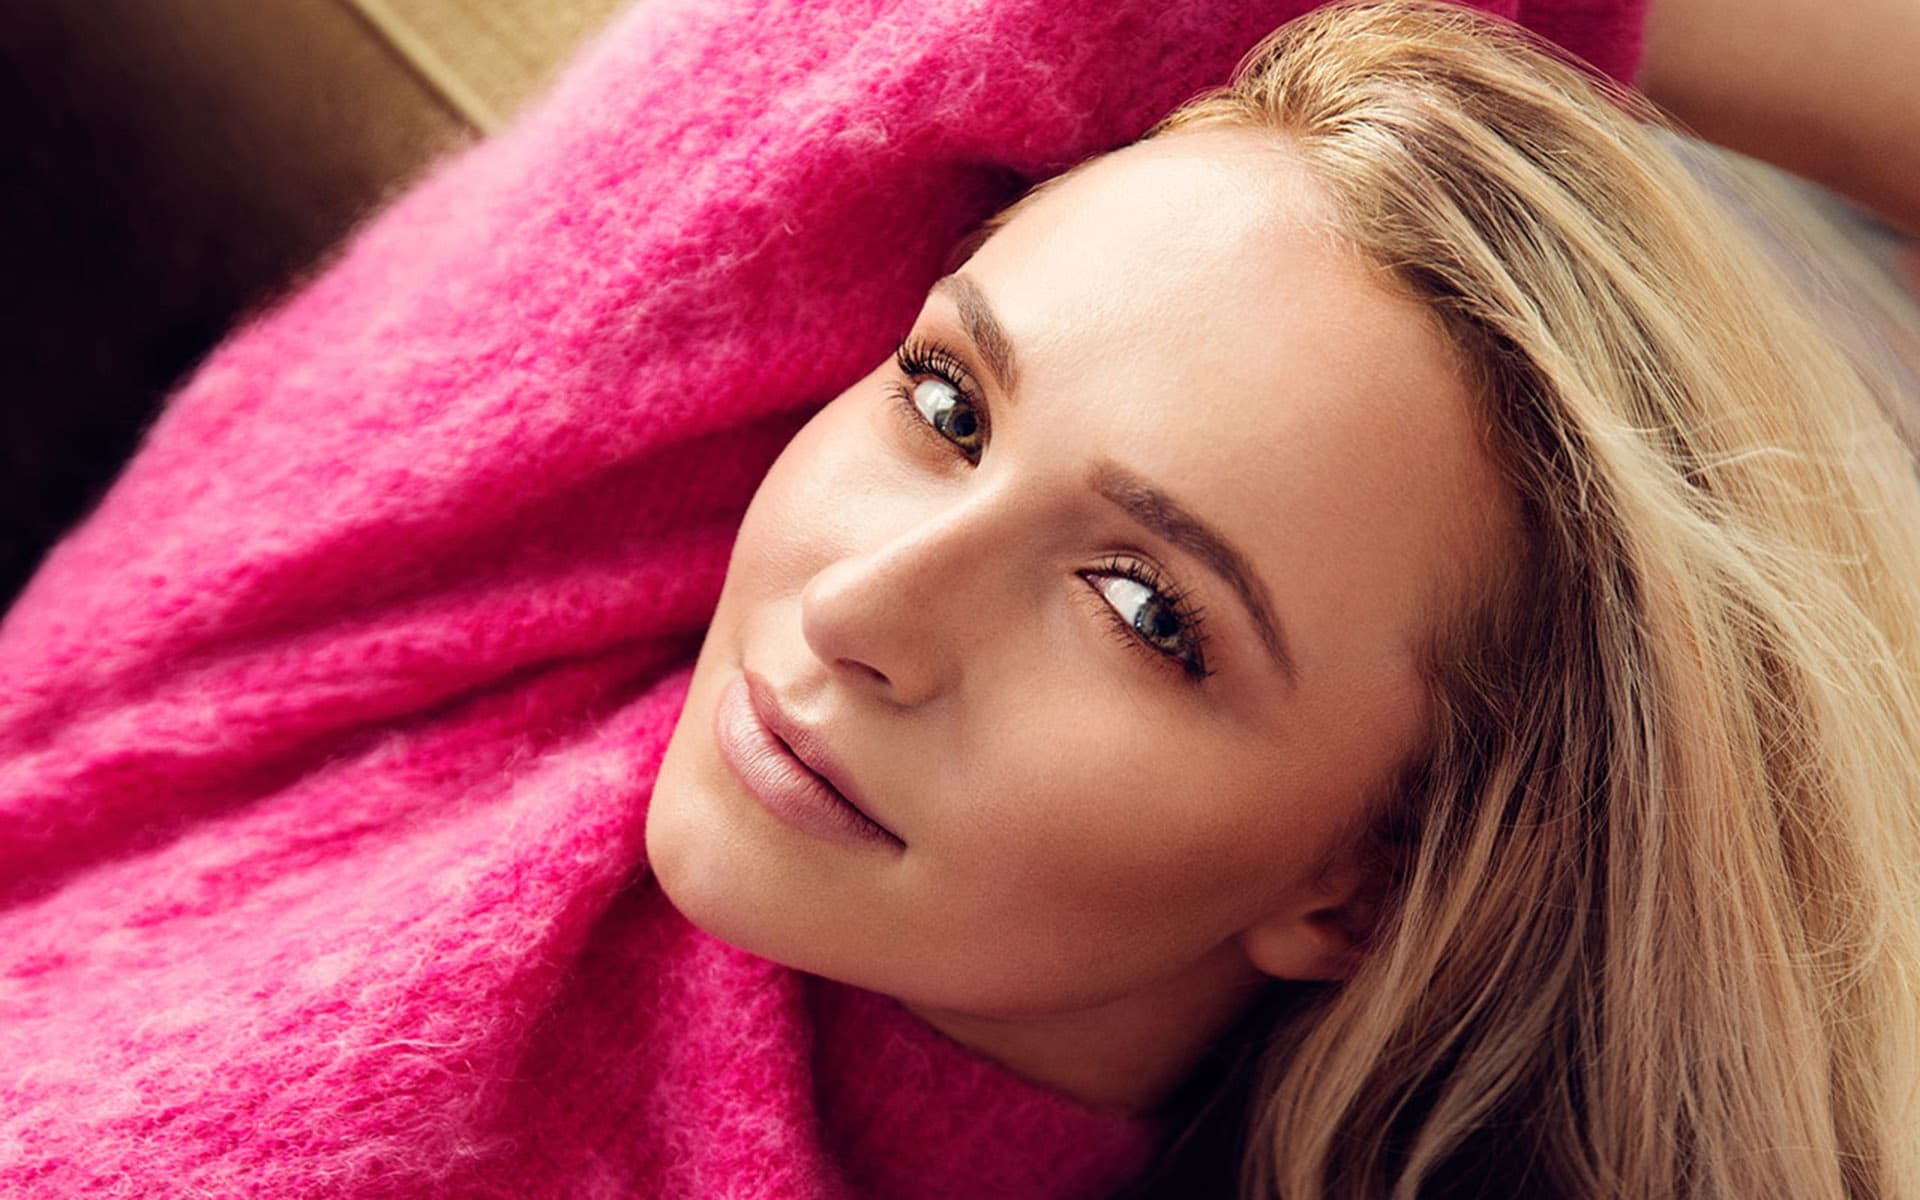 A Wallpaper For Girls 20 Hayden Panettiere Wallpapers Hd Hairstyles High Quality